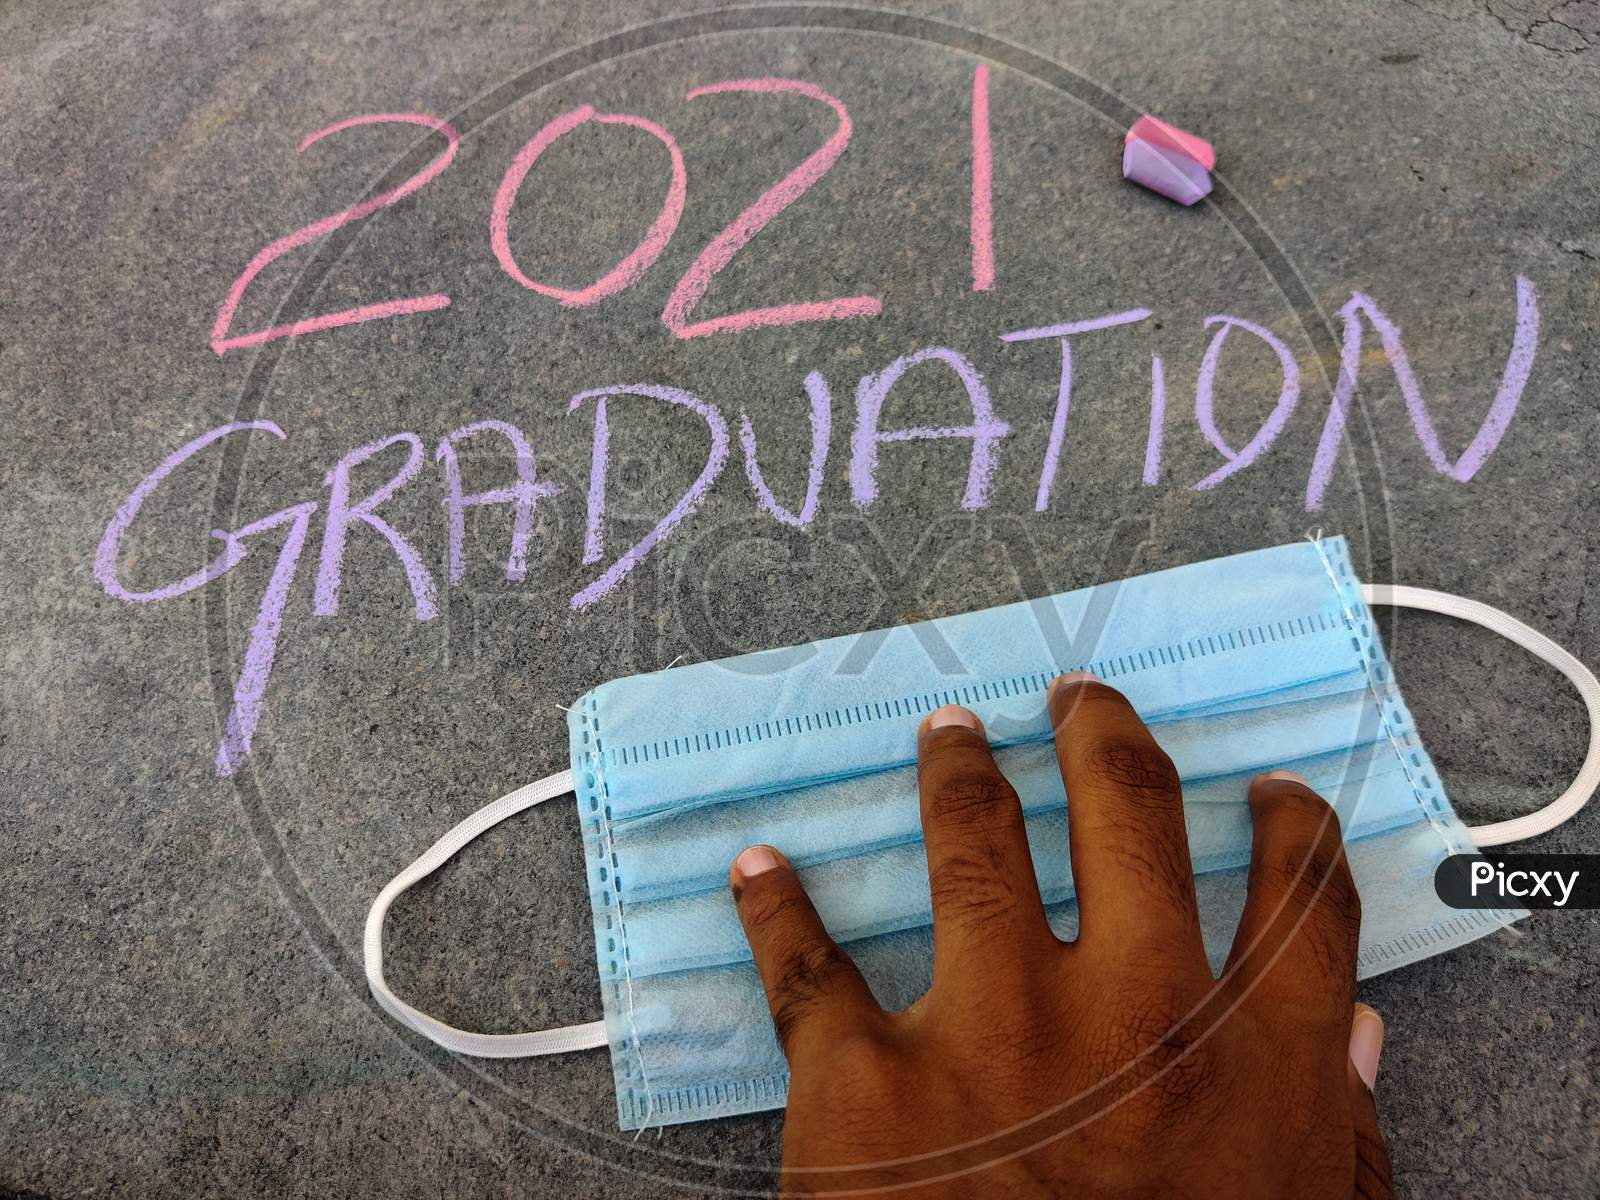 The Inscription Text On The Grey Board, 2021 Graduation Using Color Chalk Pieces And South Indian Male Hands On Surgical Mask